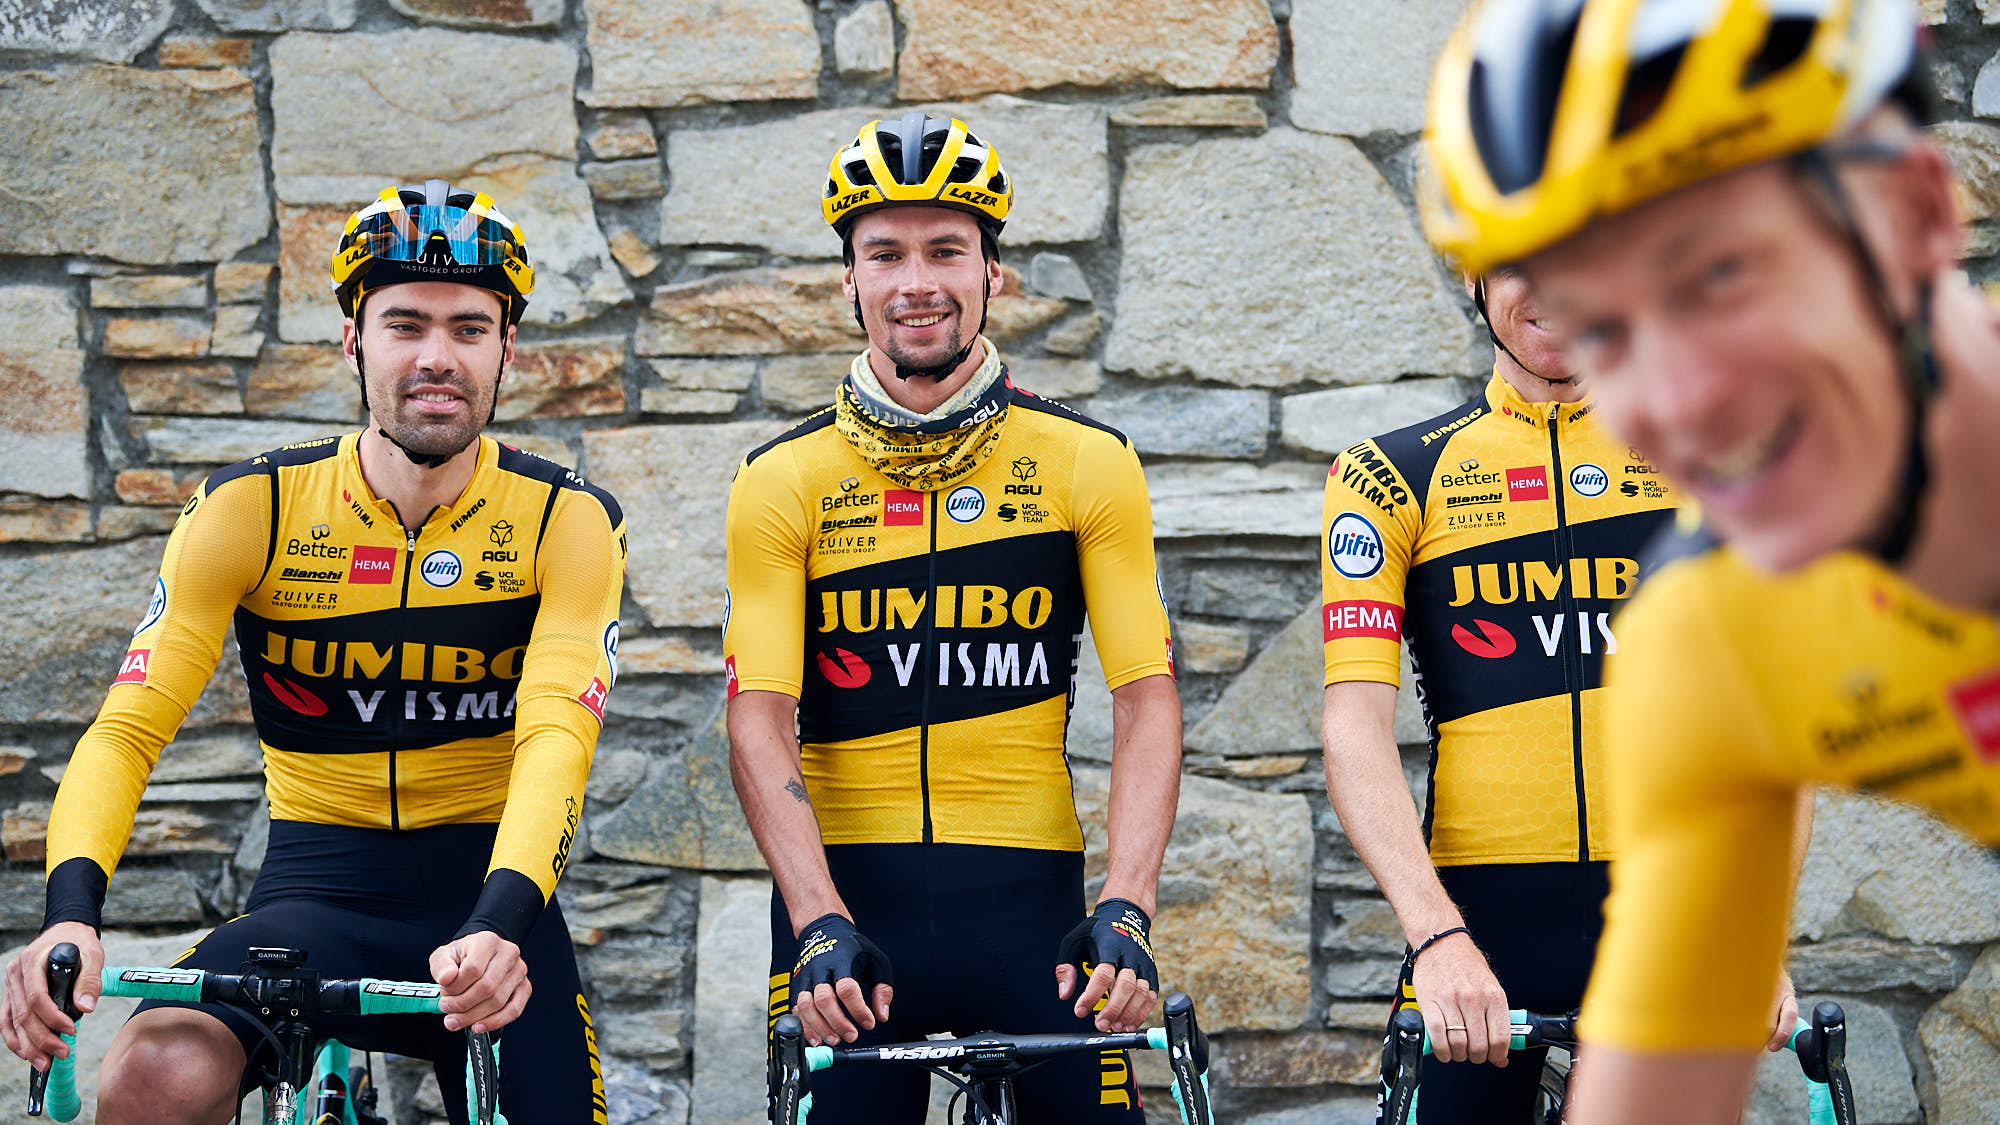 Robert Gesink fooling around during a group photo